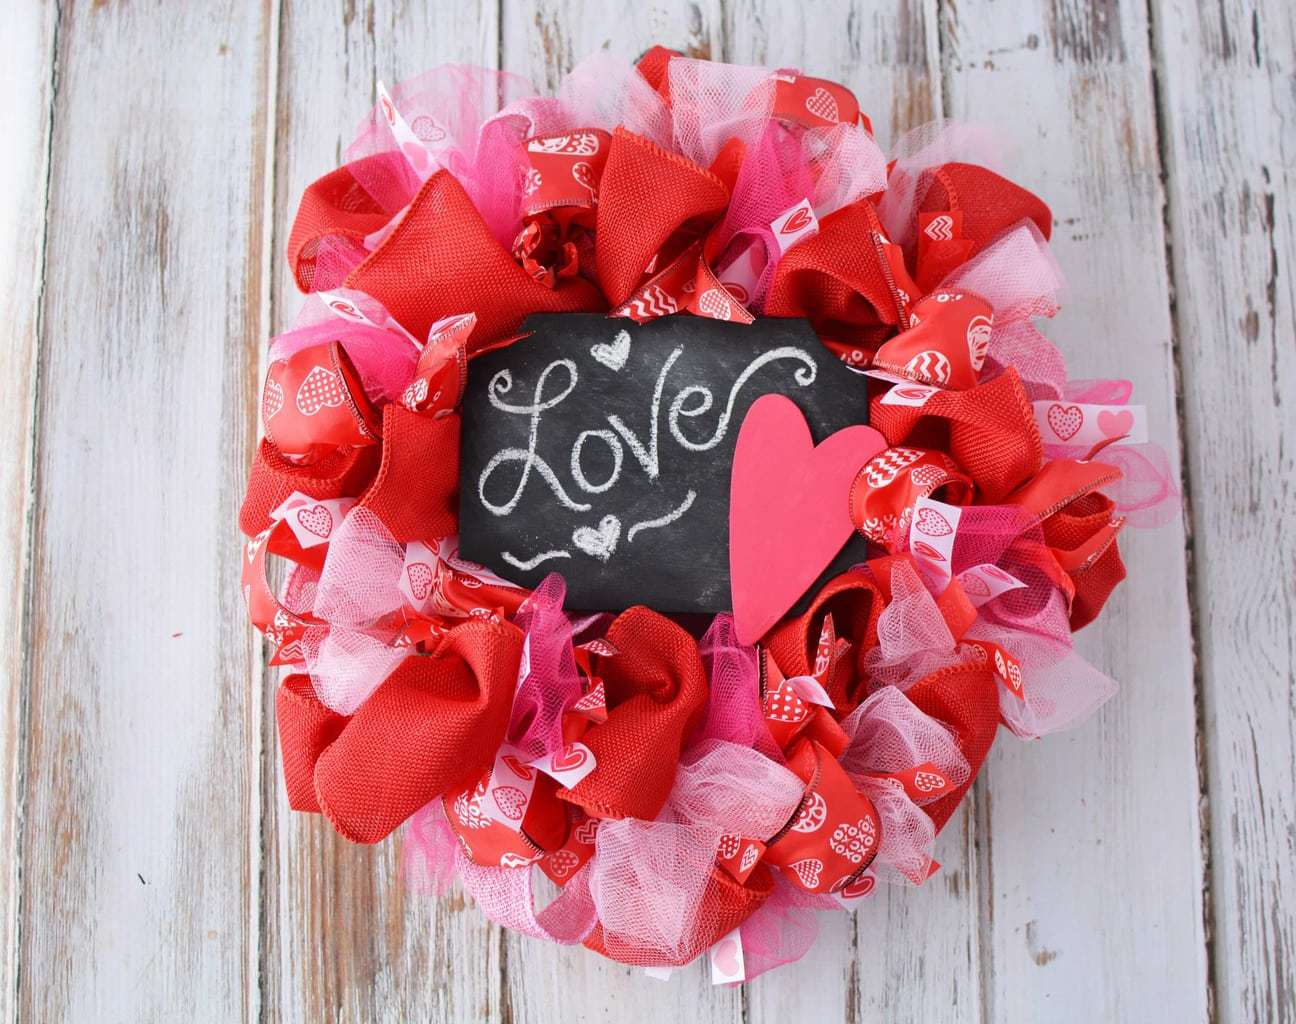 DIY Valentine's Day Wreath – Homemade Door Decorations